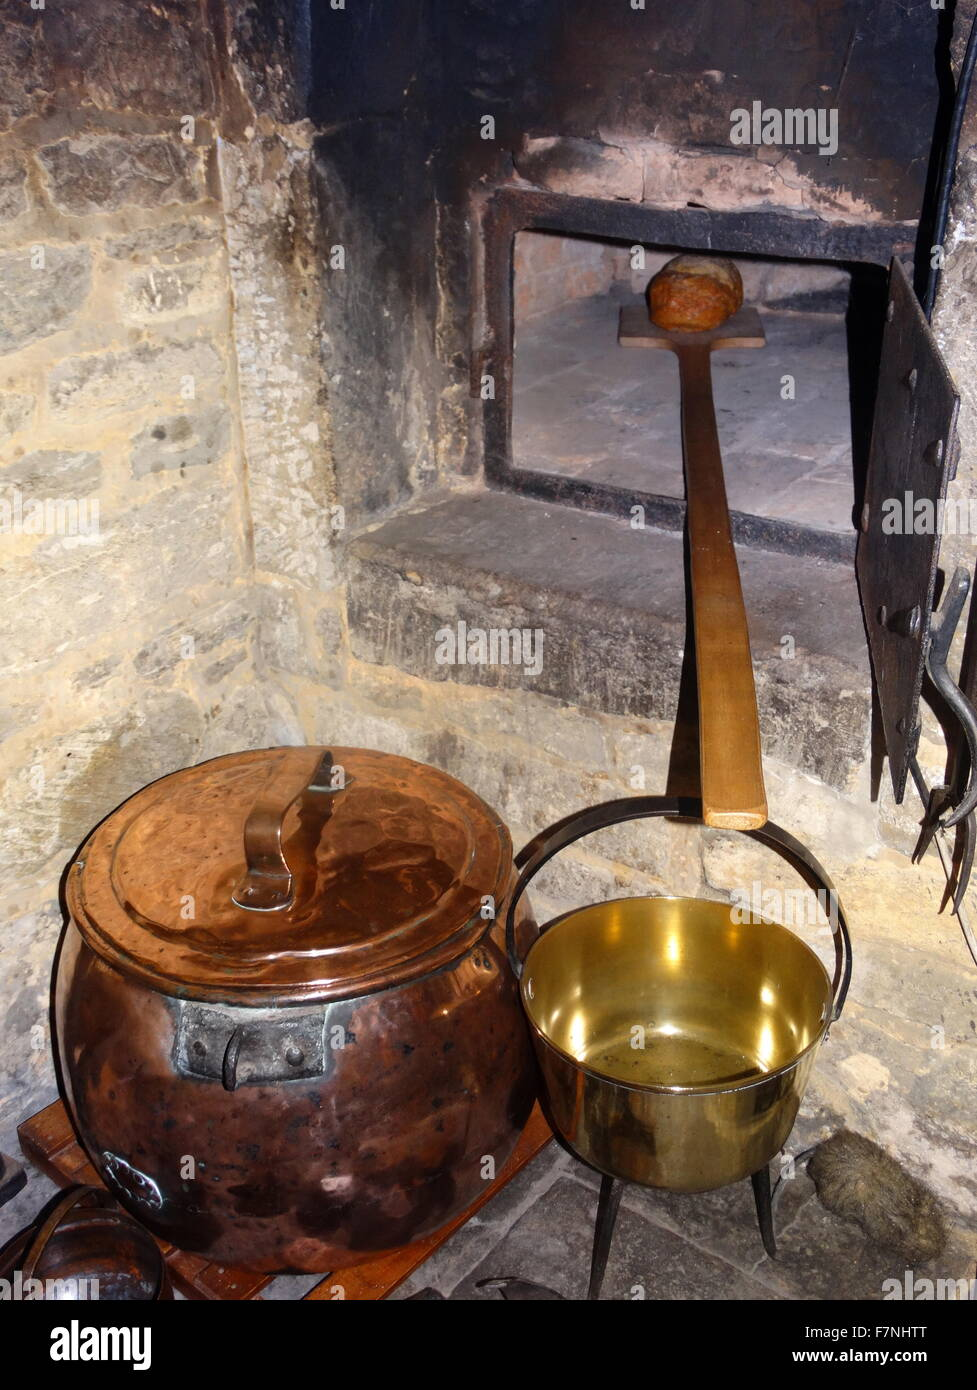 17th century Dutch kitchen - Stock Image